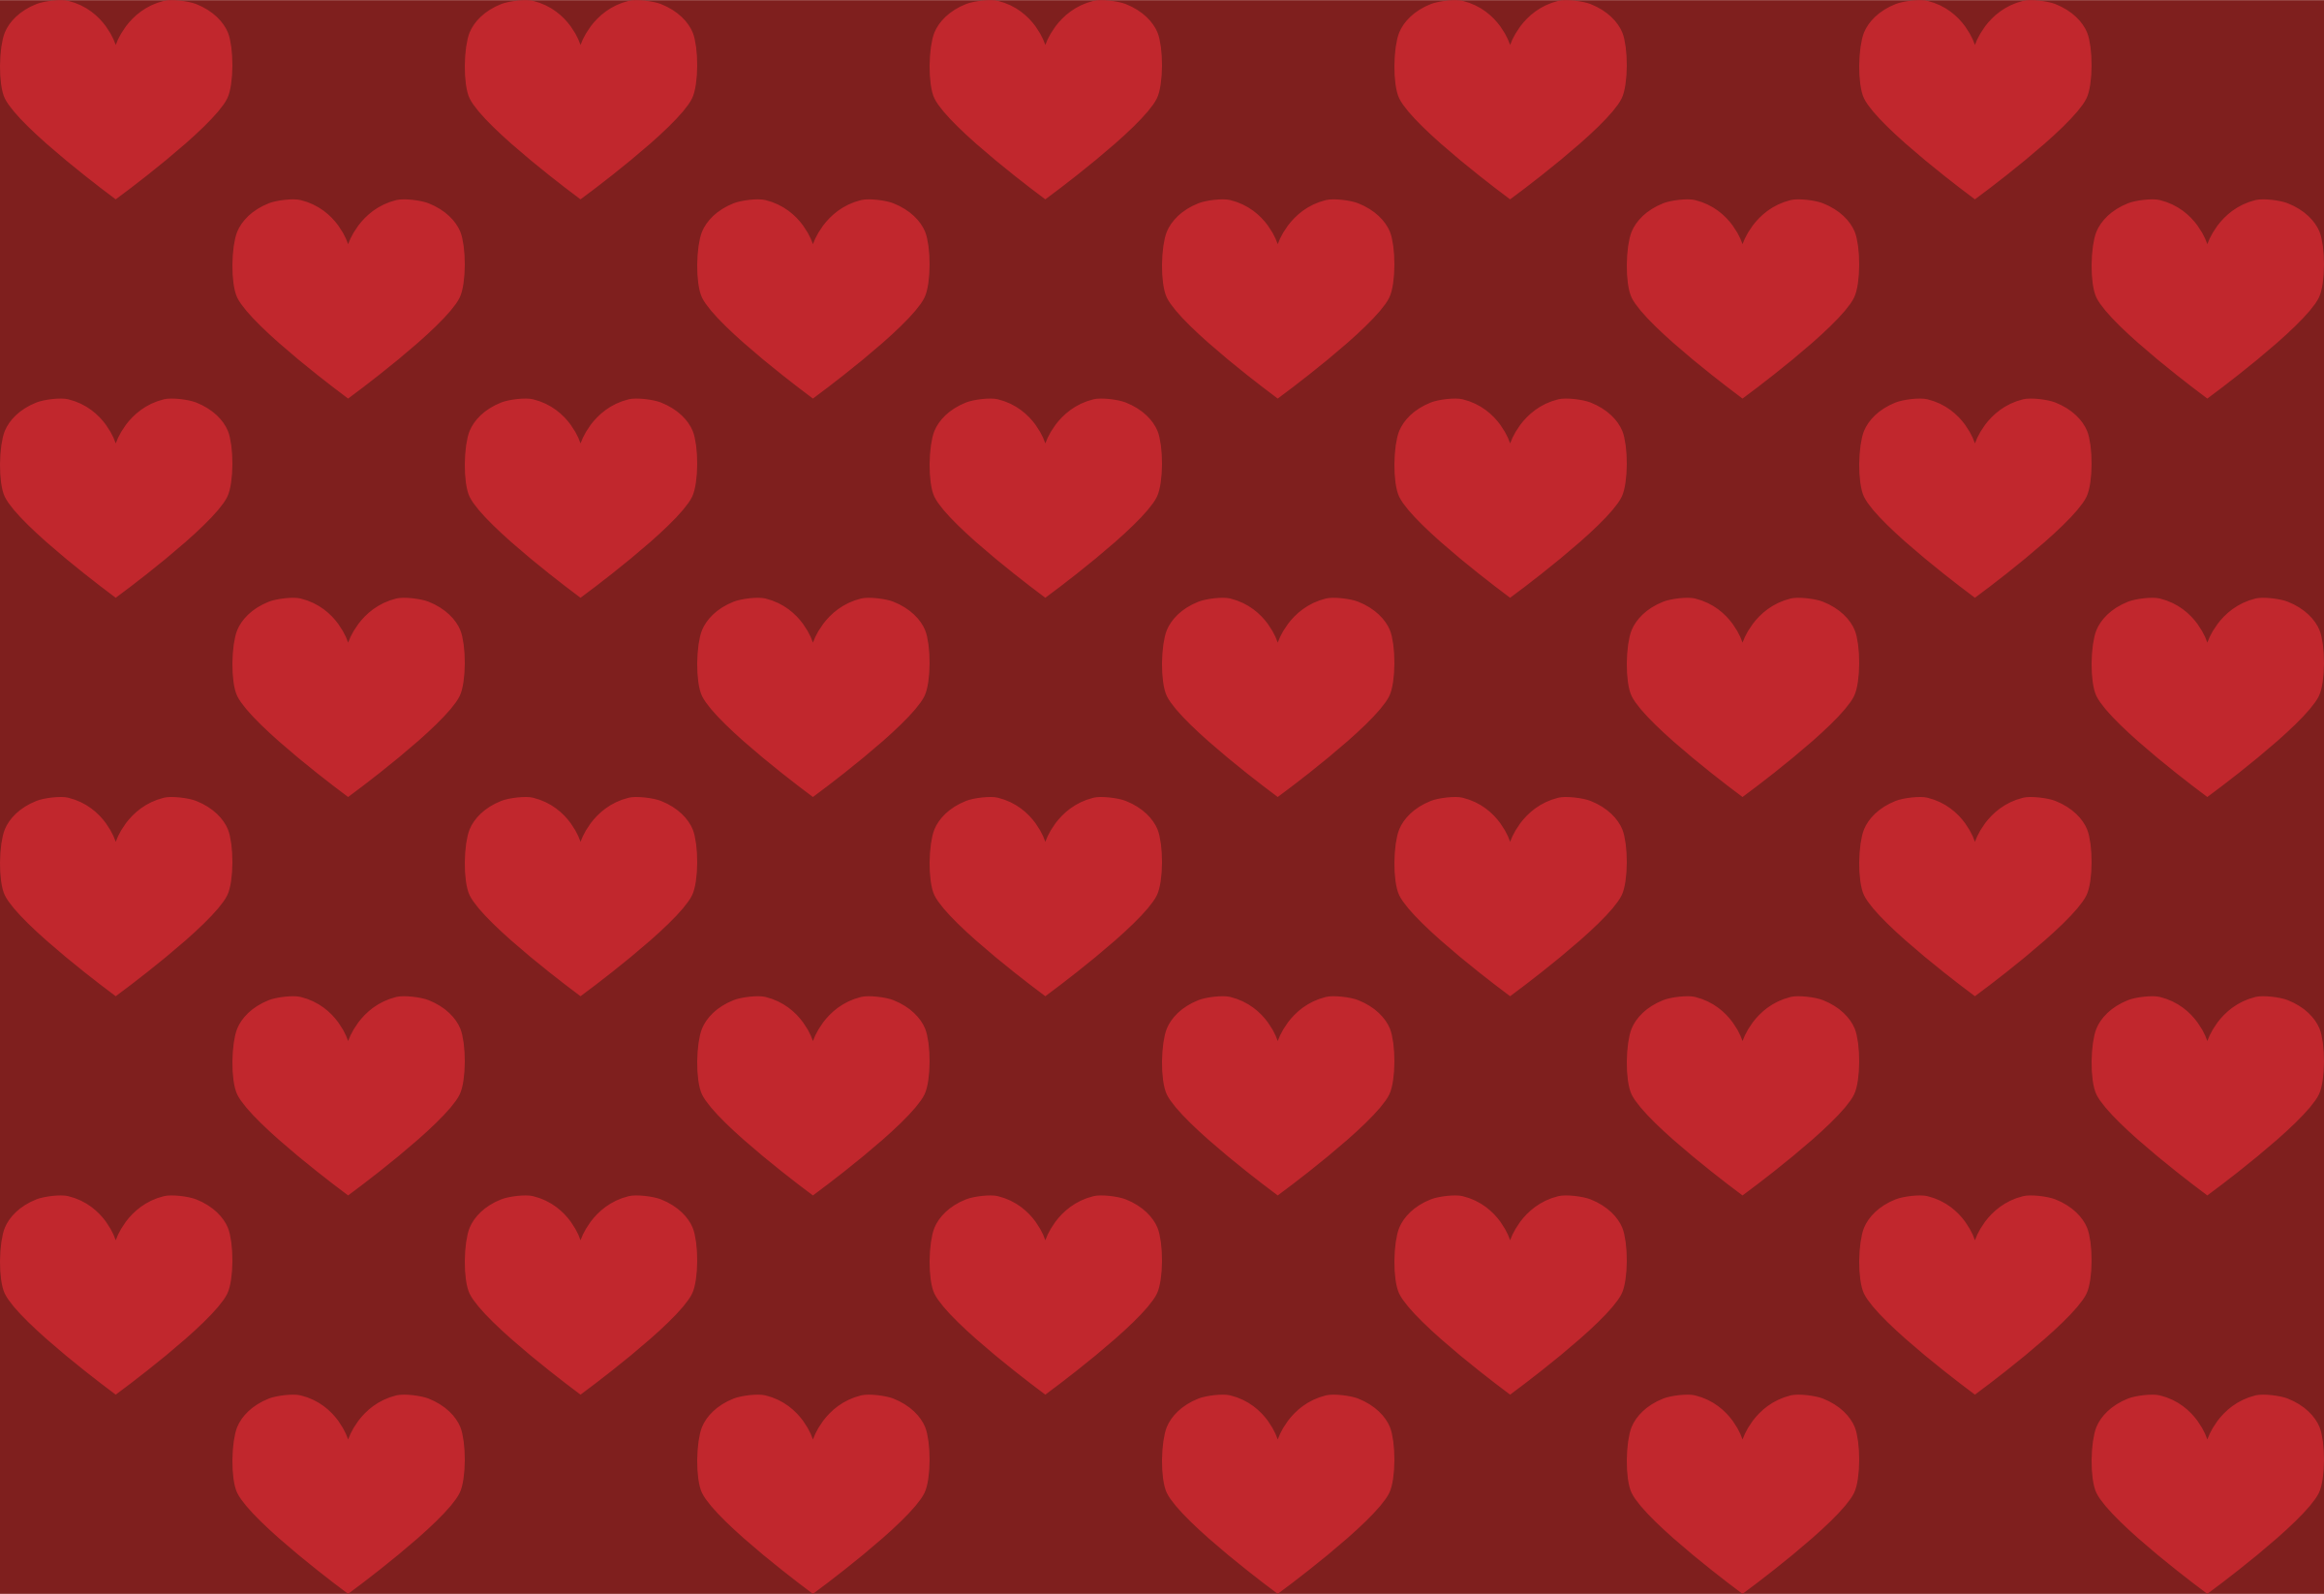 Heart Background by CLXVI